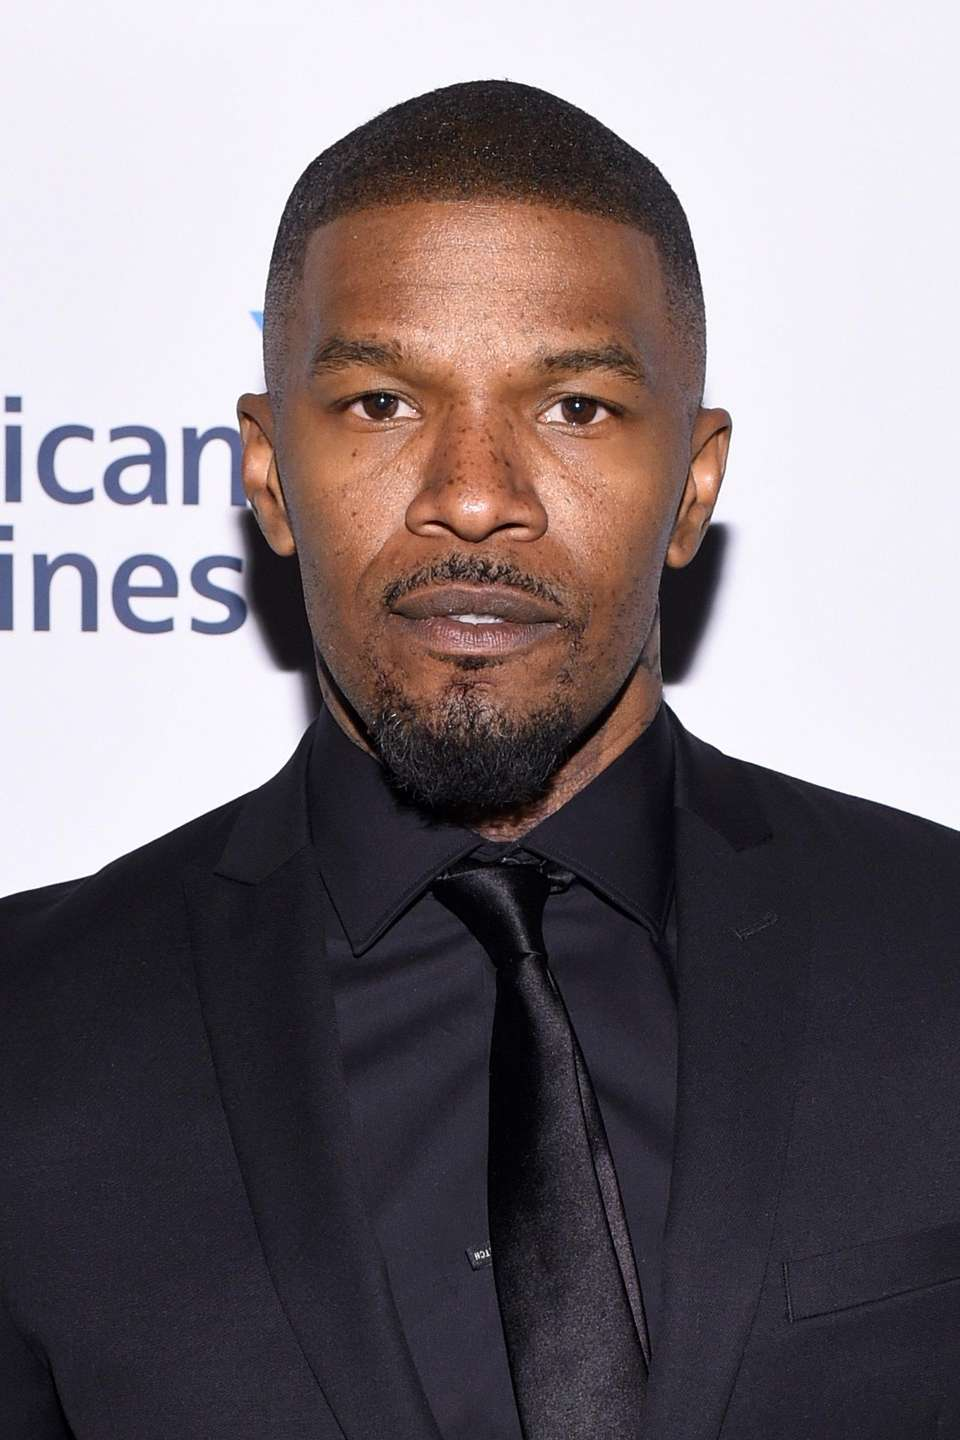 Jamie Foxx was adopted as an infant by